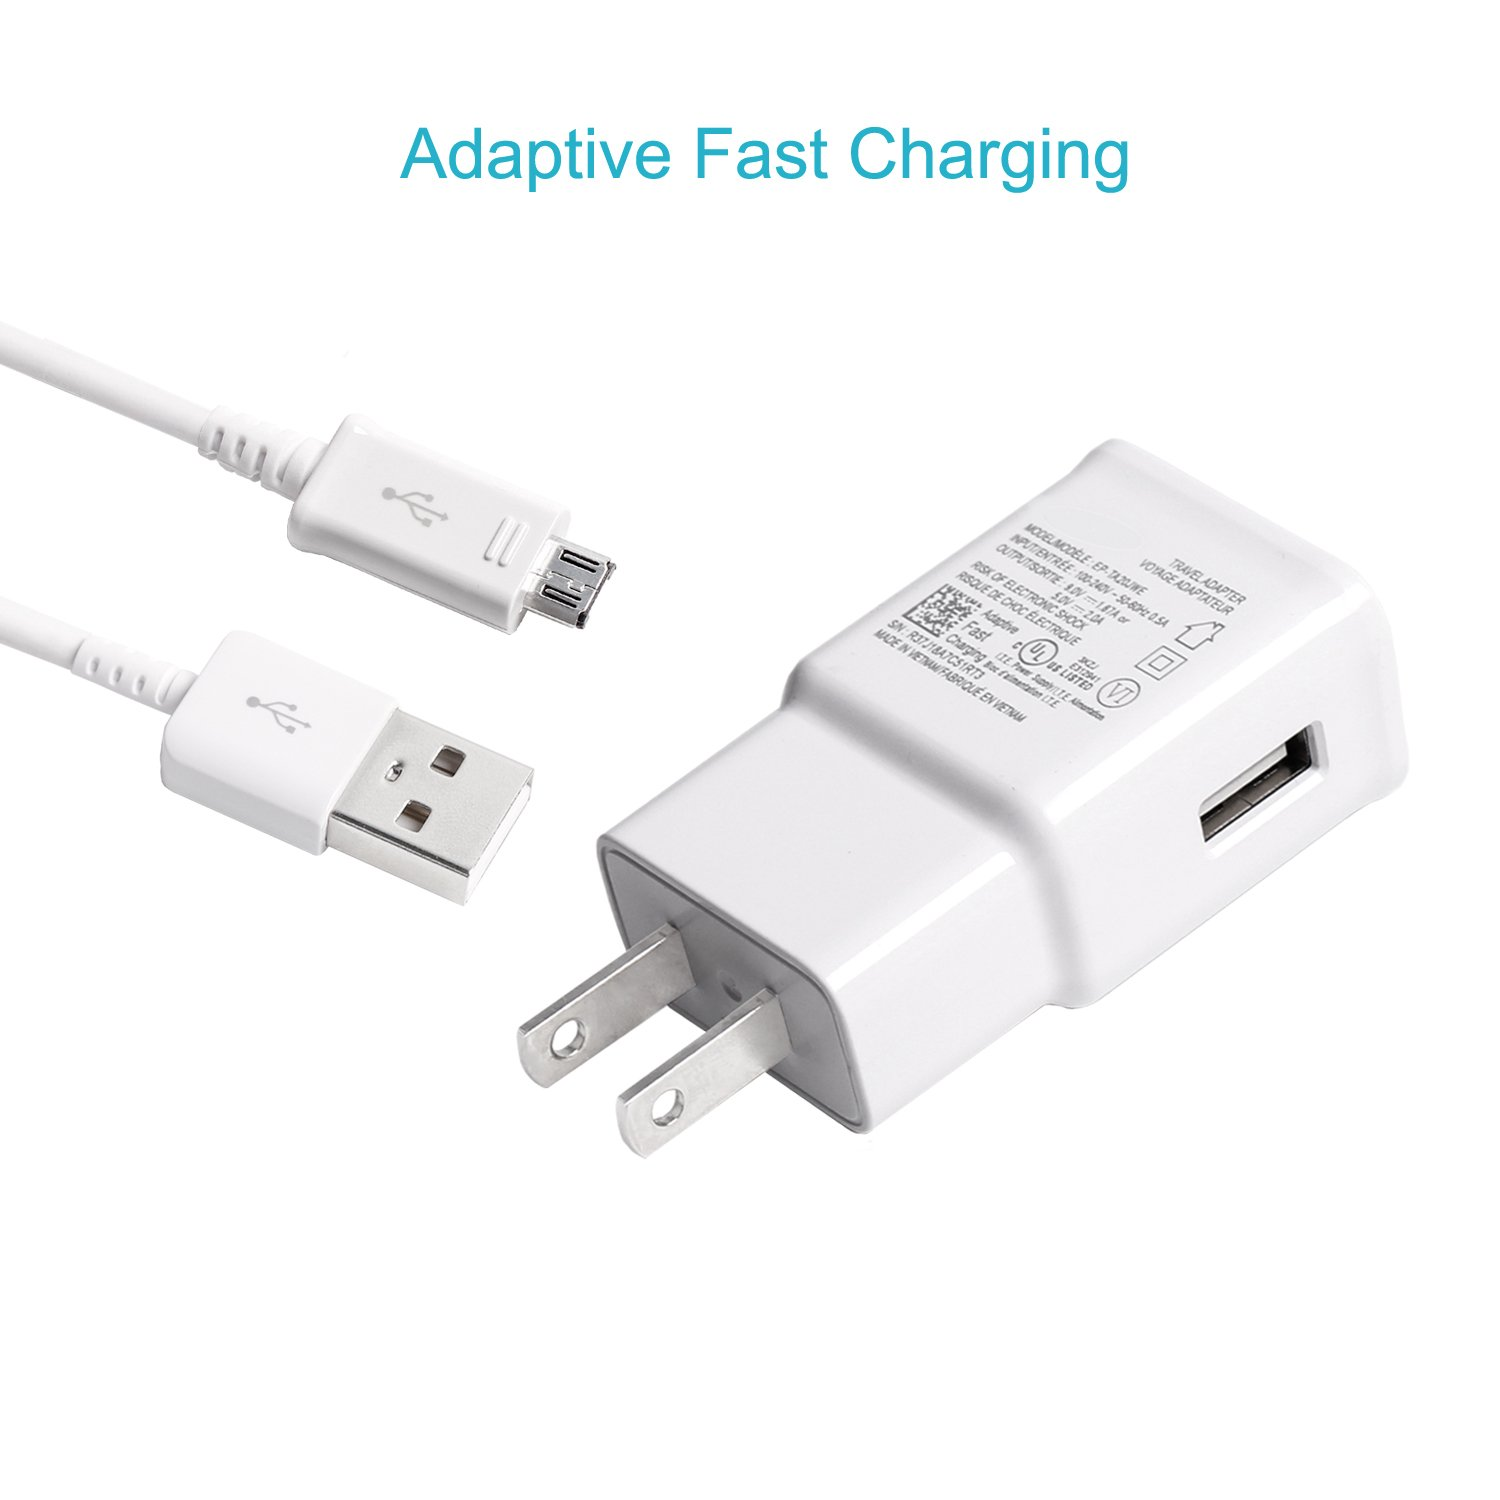 MBLAI Fast Charge Adaptive Fast Charger Kit for Samsung Galaxy S7/S7 Edge/S6/Note5/4 /S3,MBLAI USB 2.0 Fast Charging Kit True Digital Adaptive Fast Charging (Wall Charger + Micro USB Cable) by MBLAI (Image #3)